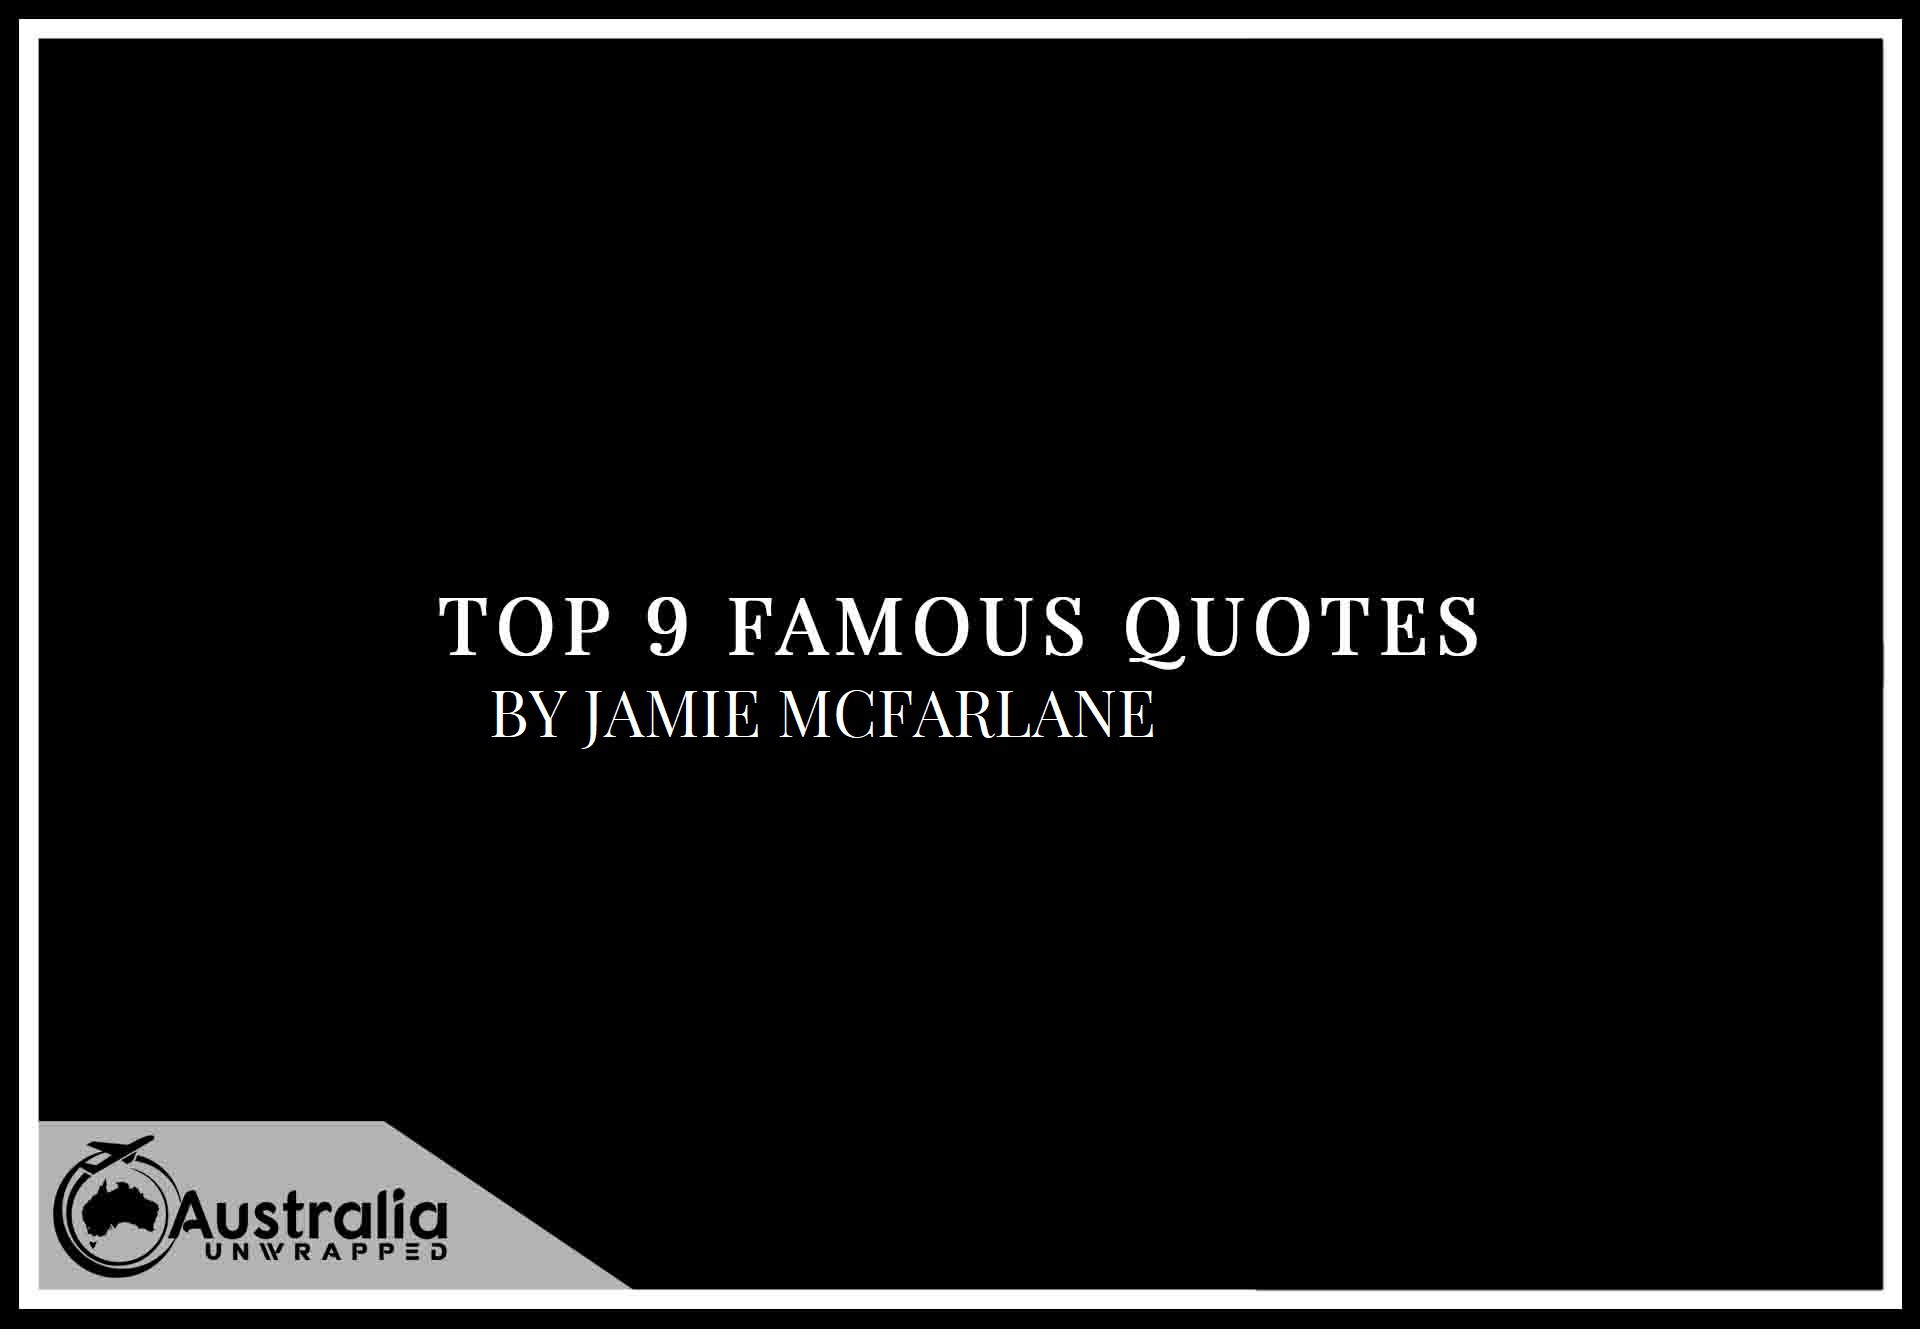 Top 9 Famous Quotes by Author Jamie McFarlane